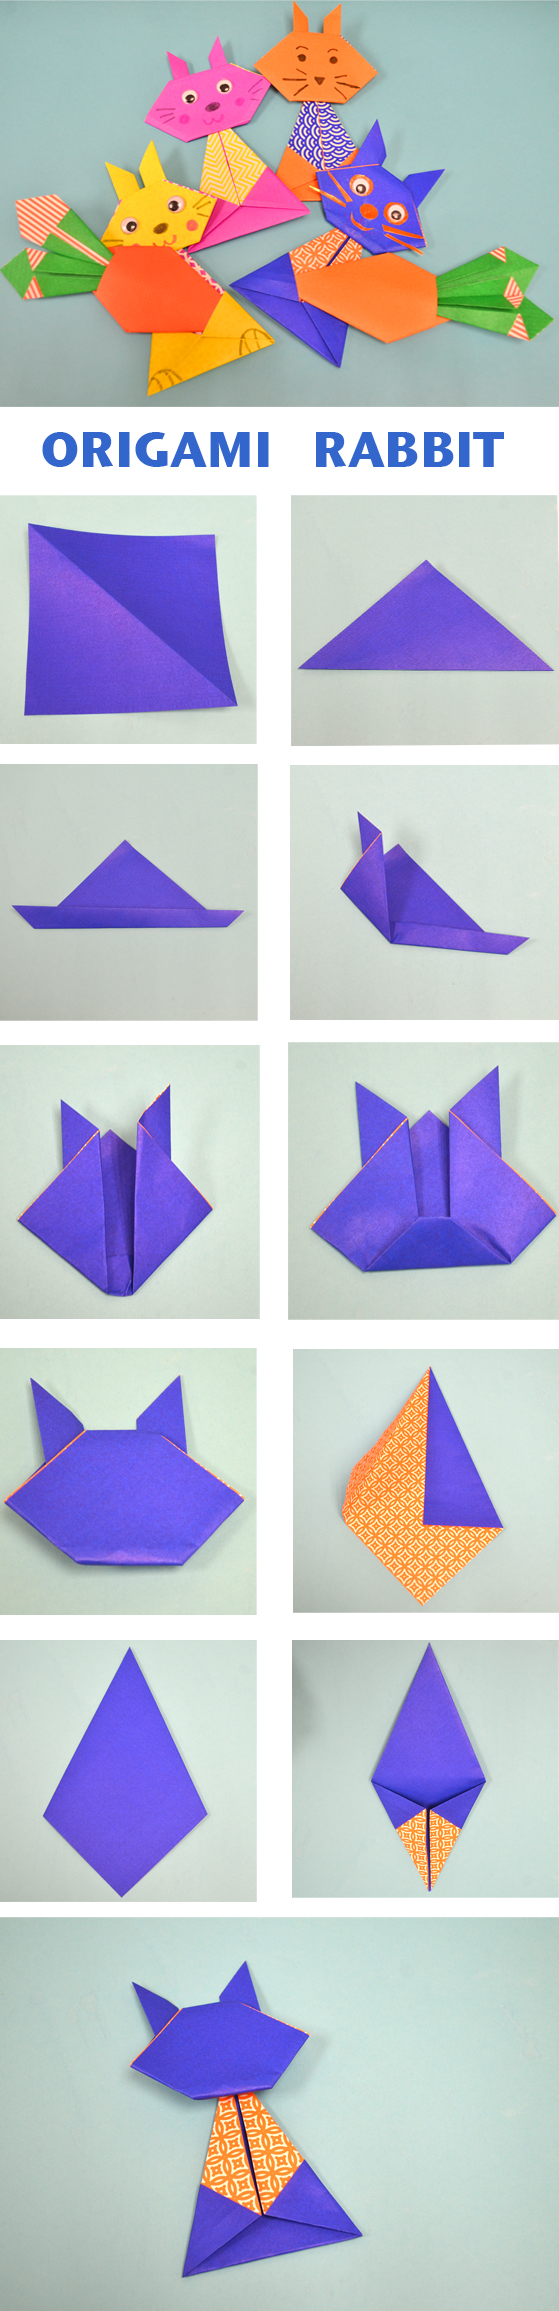 Origami Challenge: Paper Rabbit (inspired by To the Moon) | 2311x559